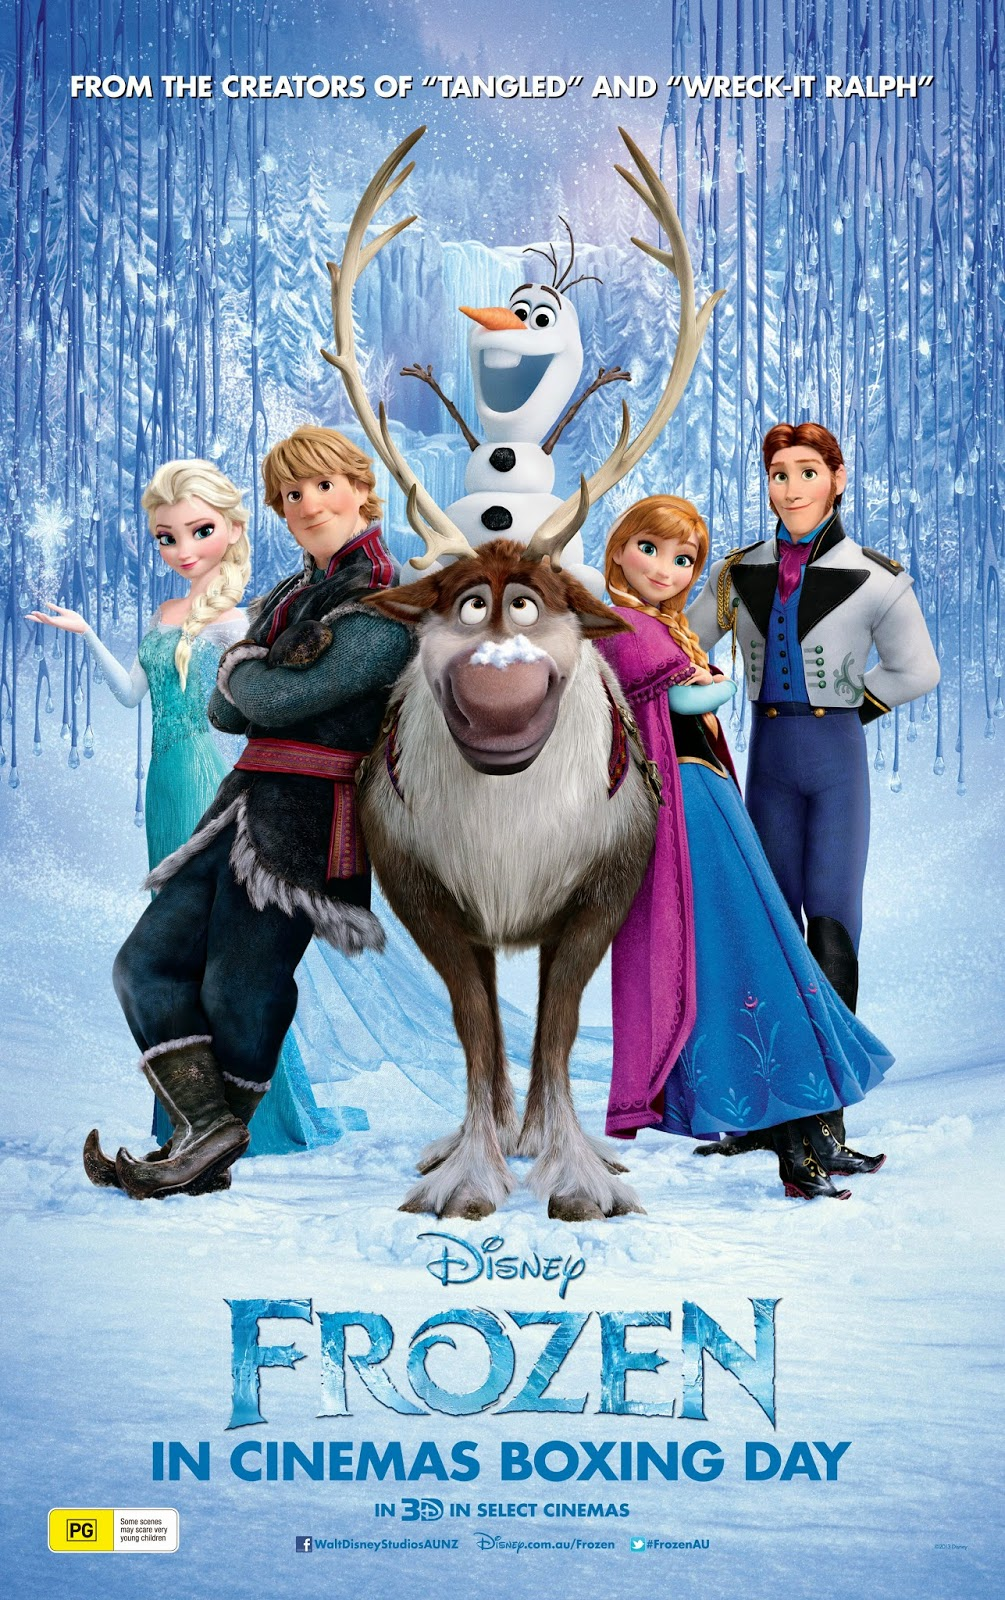 Animated, Animated Movie, Box Office, Cartoon, Entertainment, Frozen, Hans Christian Anderson, Highest-grossing Movies, Hollywood, News, Showbiz, Snow Queen, Toy Story 3, Walt Disney, Walt Disney Animation Studios,